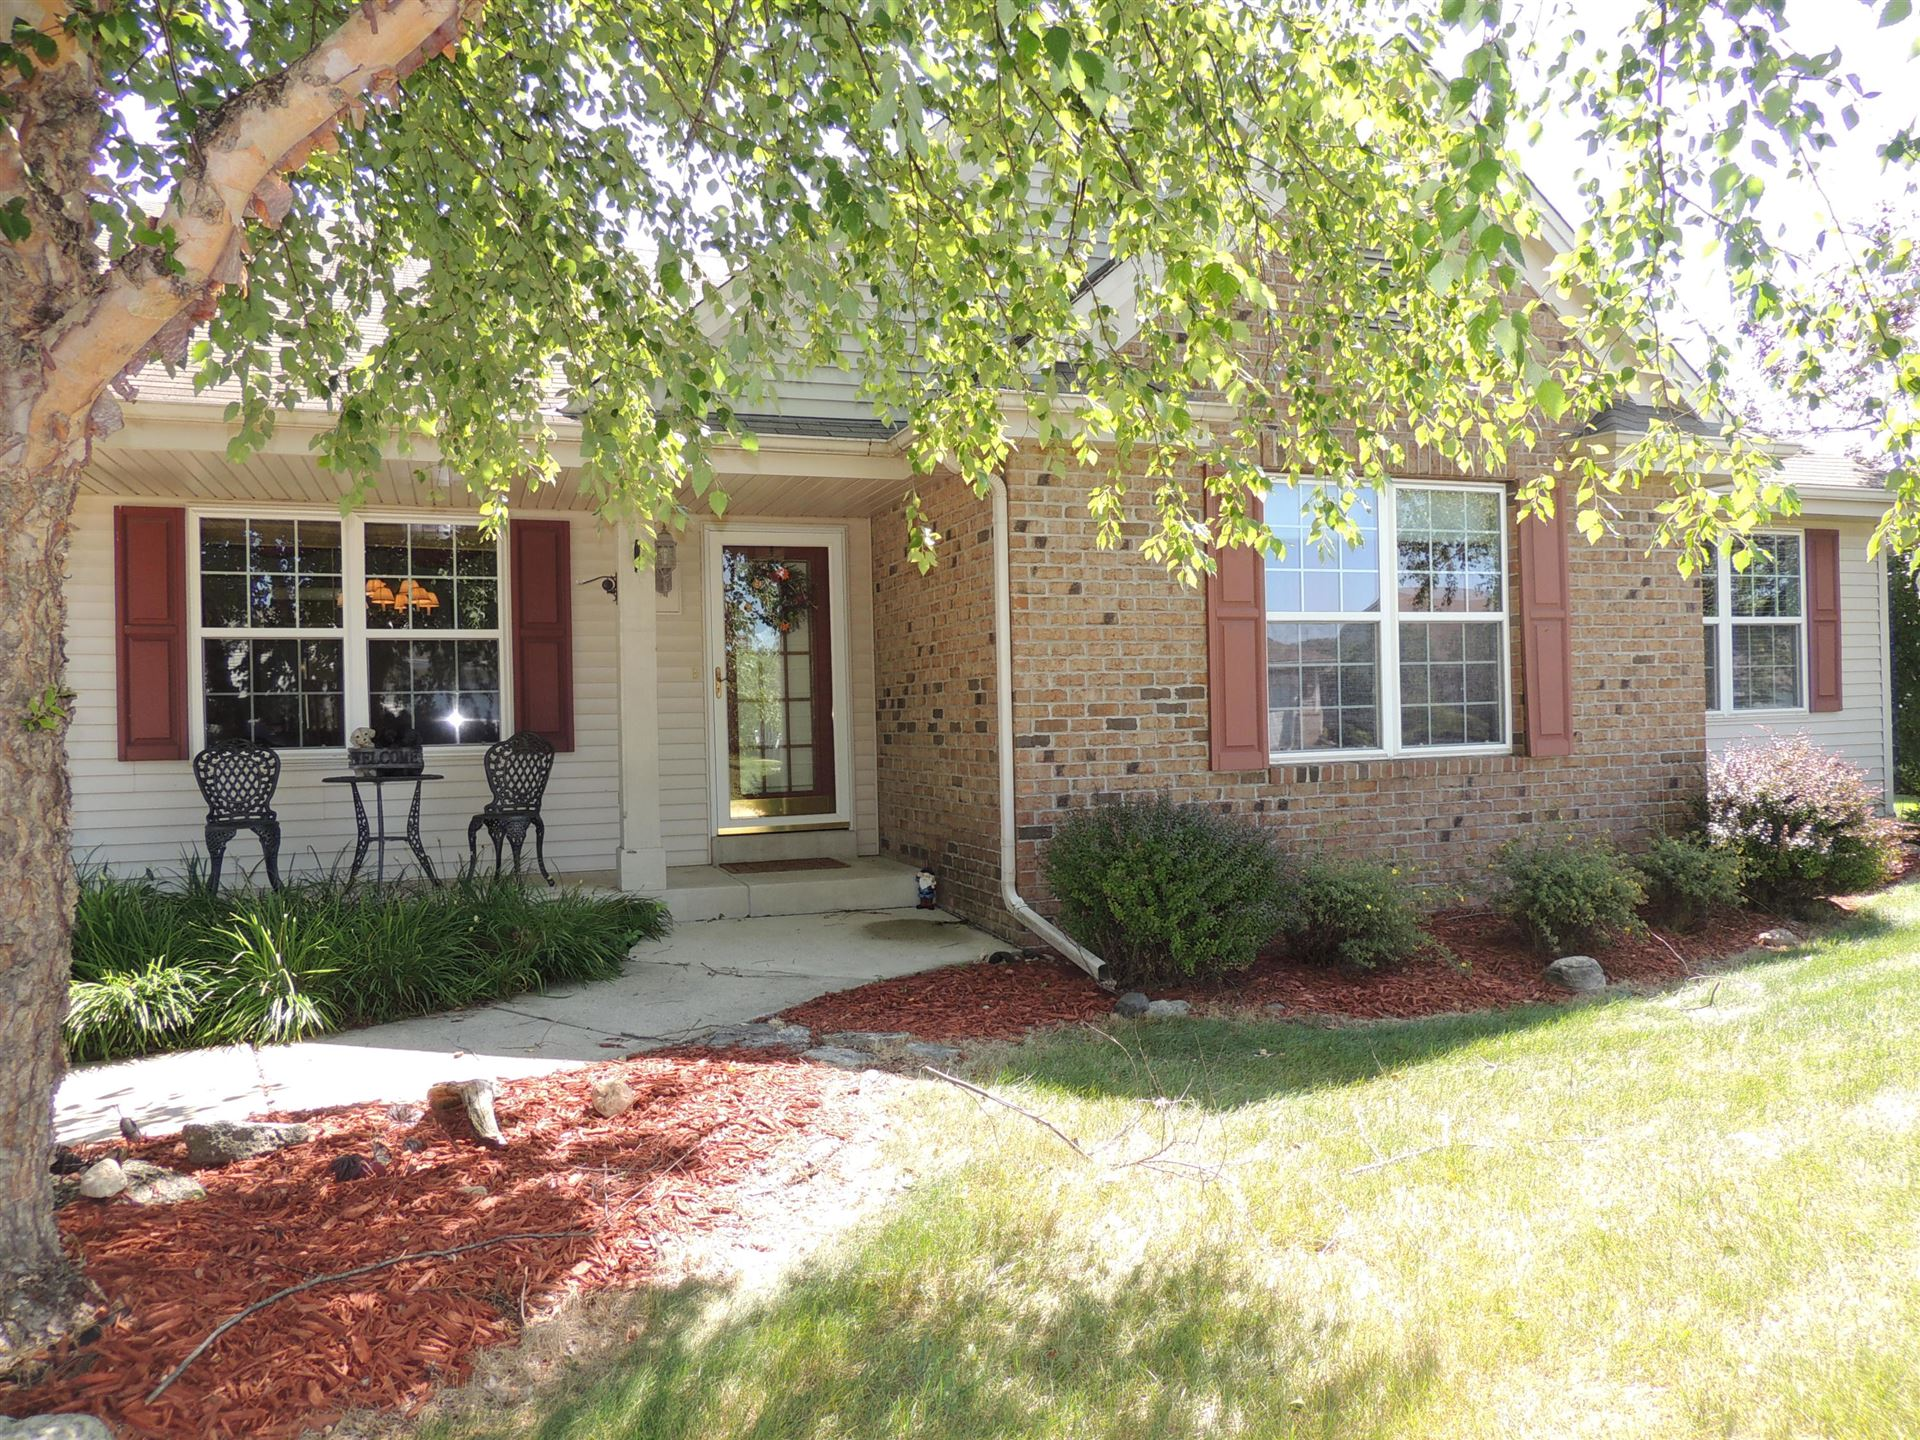 607 Maple Tree Dr, Waterford, WI 53185 - #: 1702658